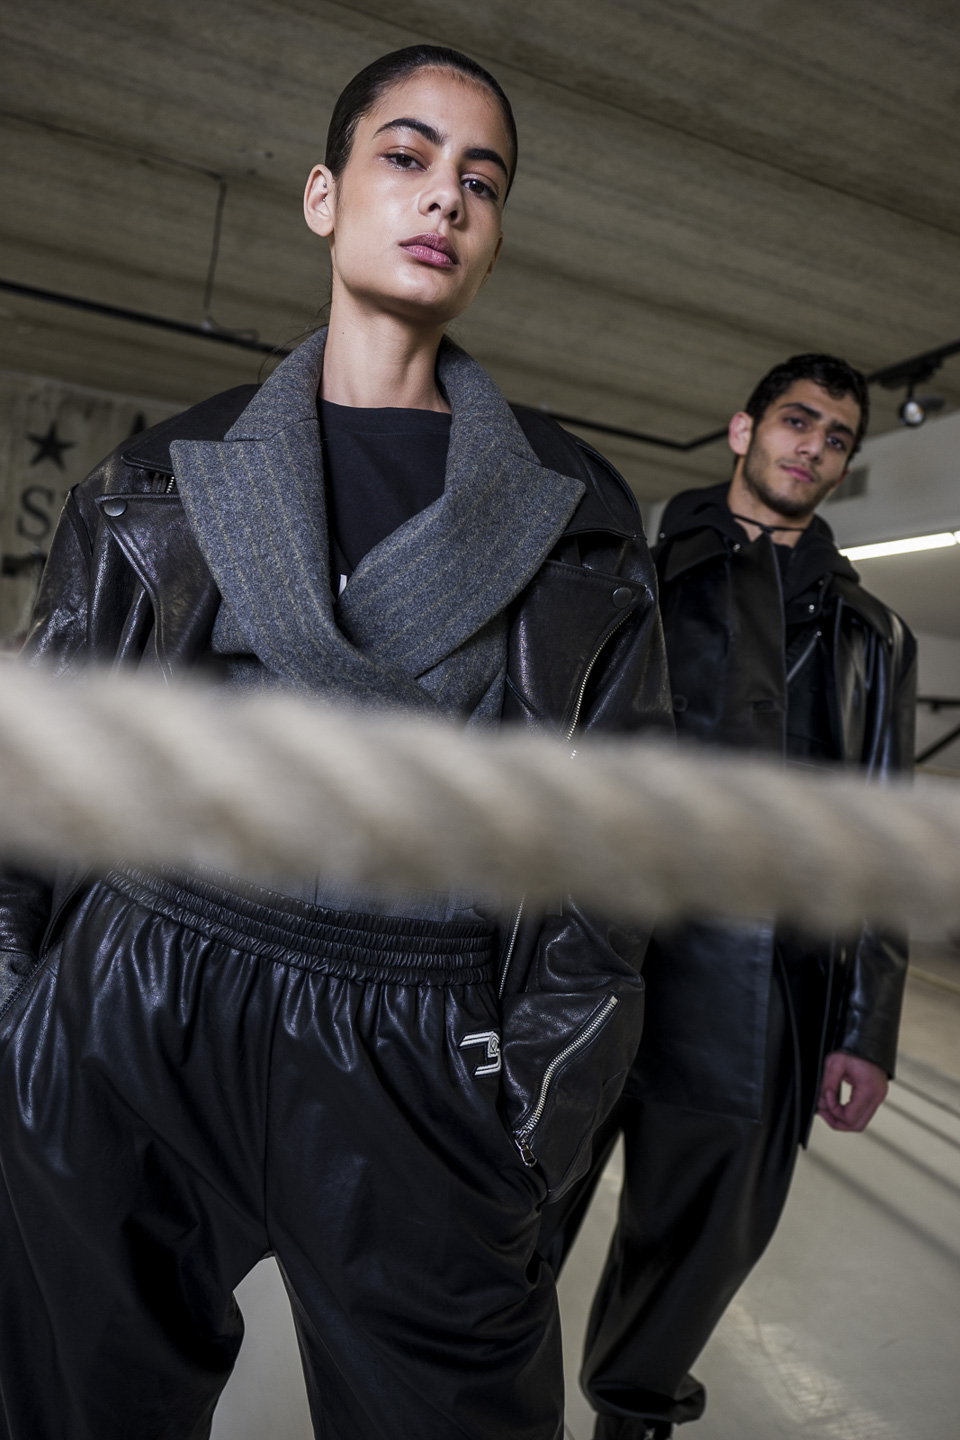 SYSTEM FW 19 - STYLING MARC GOEHRING